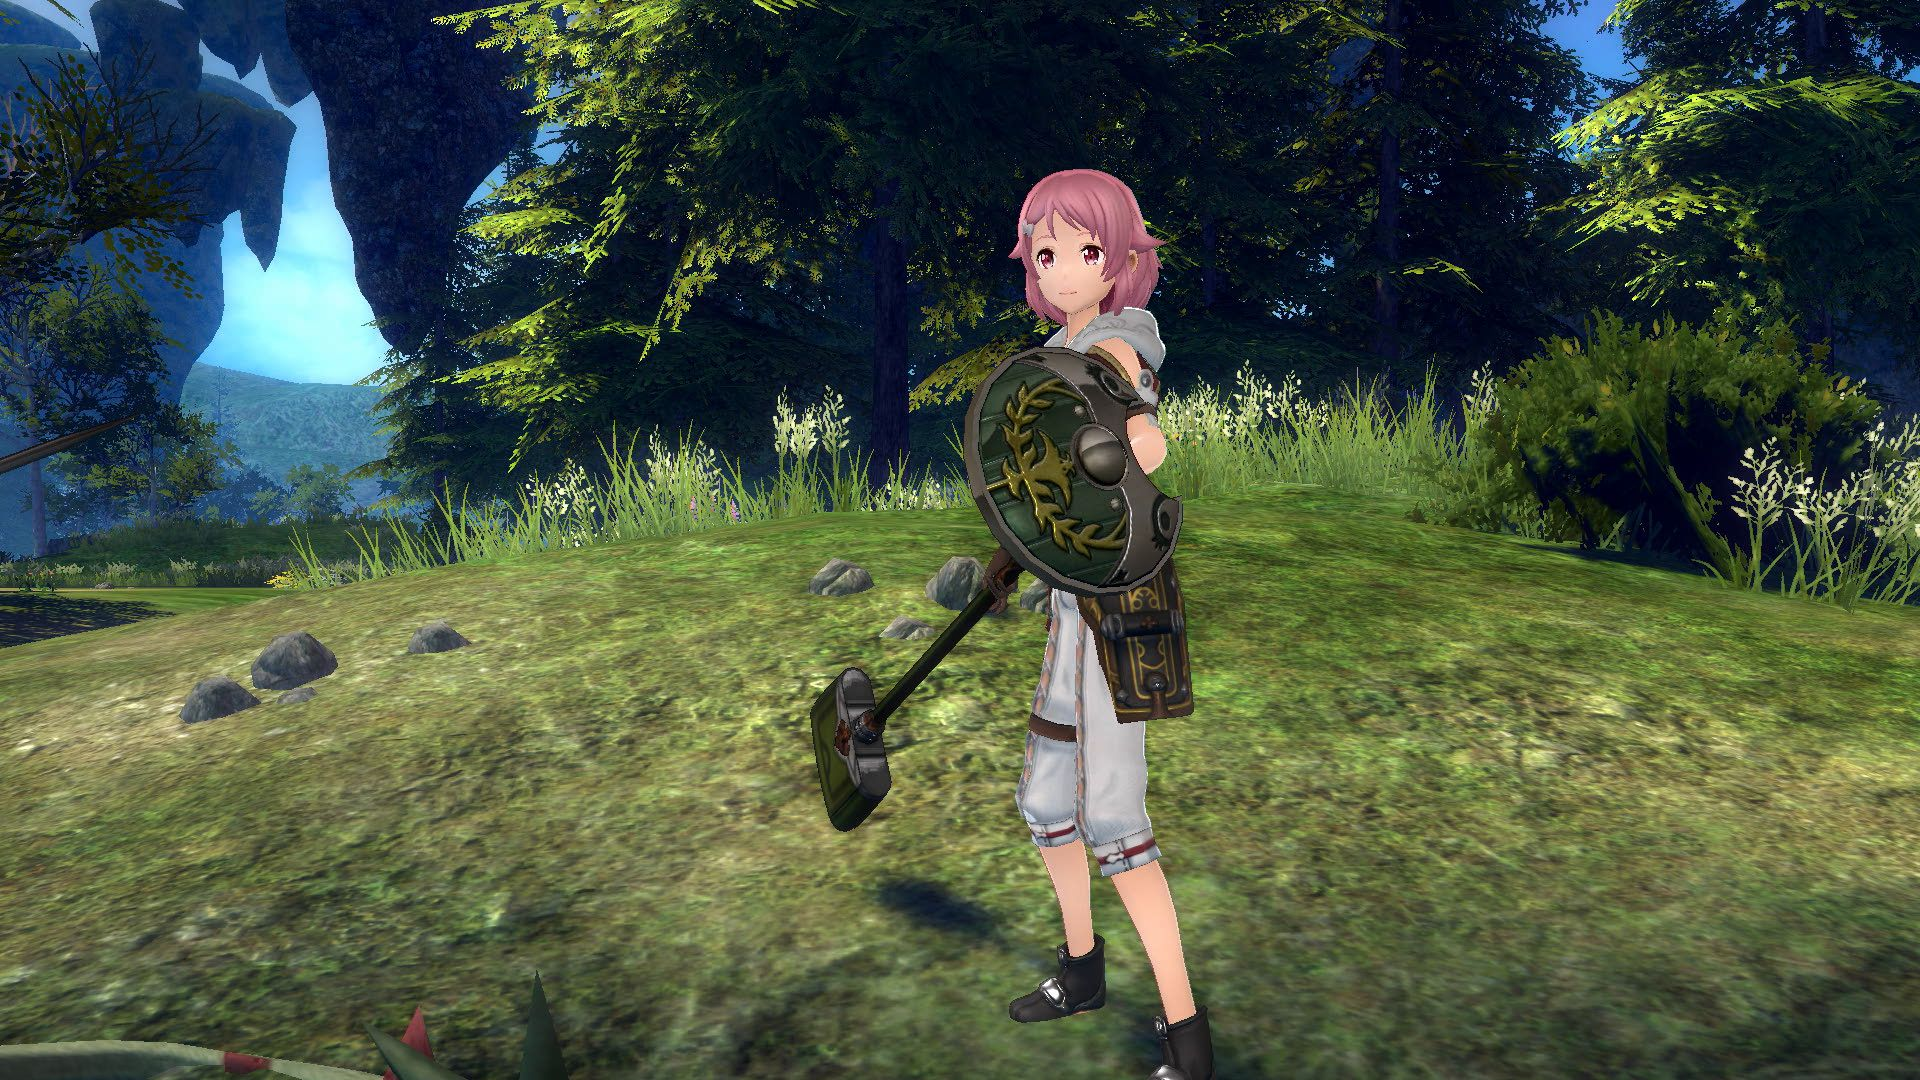 Hollow realization dating